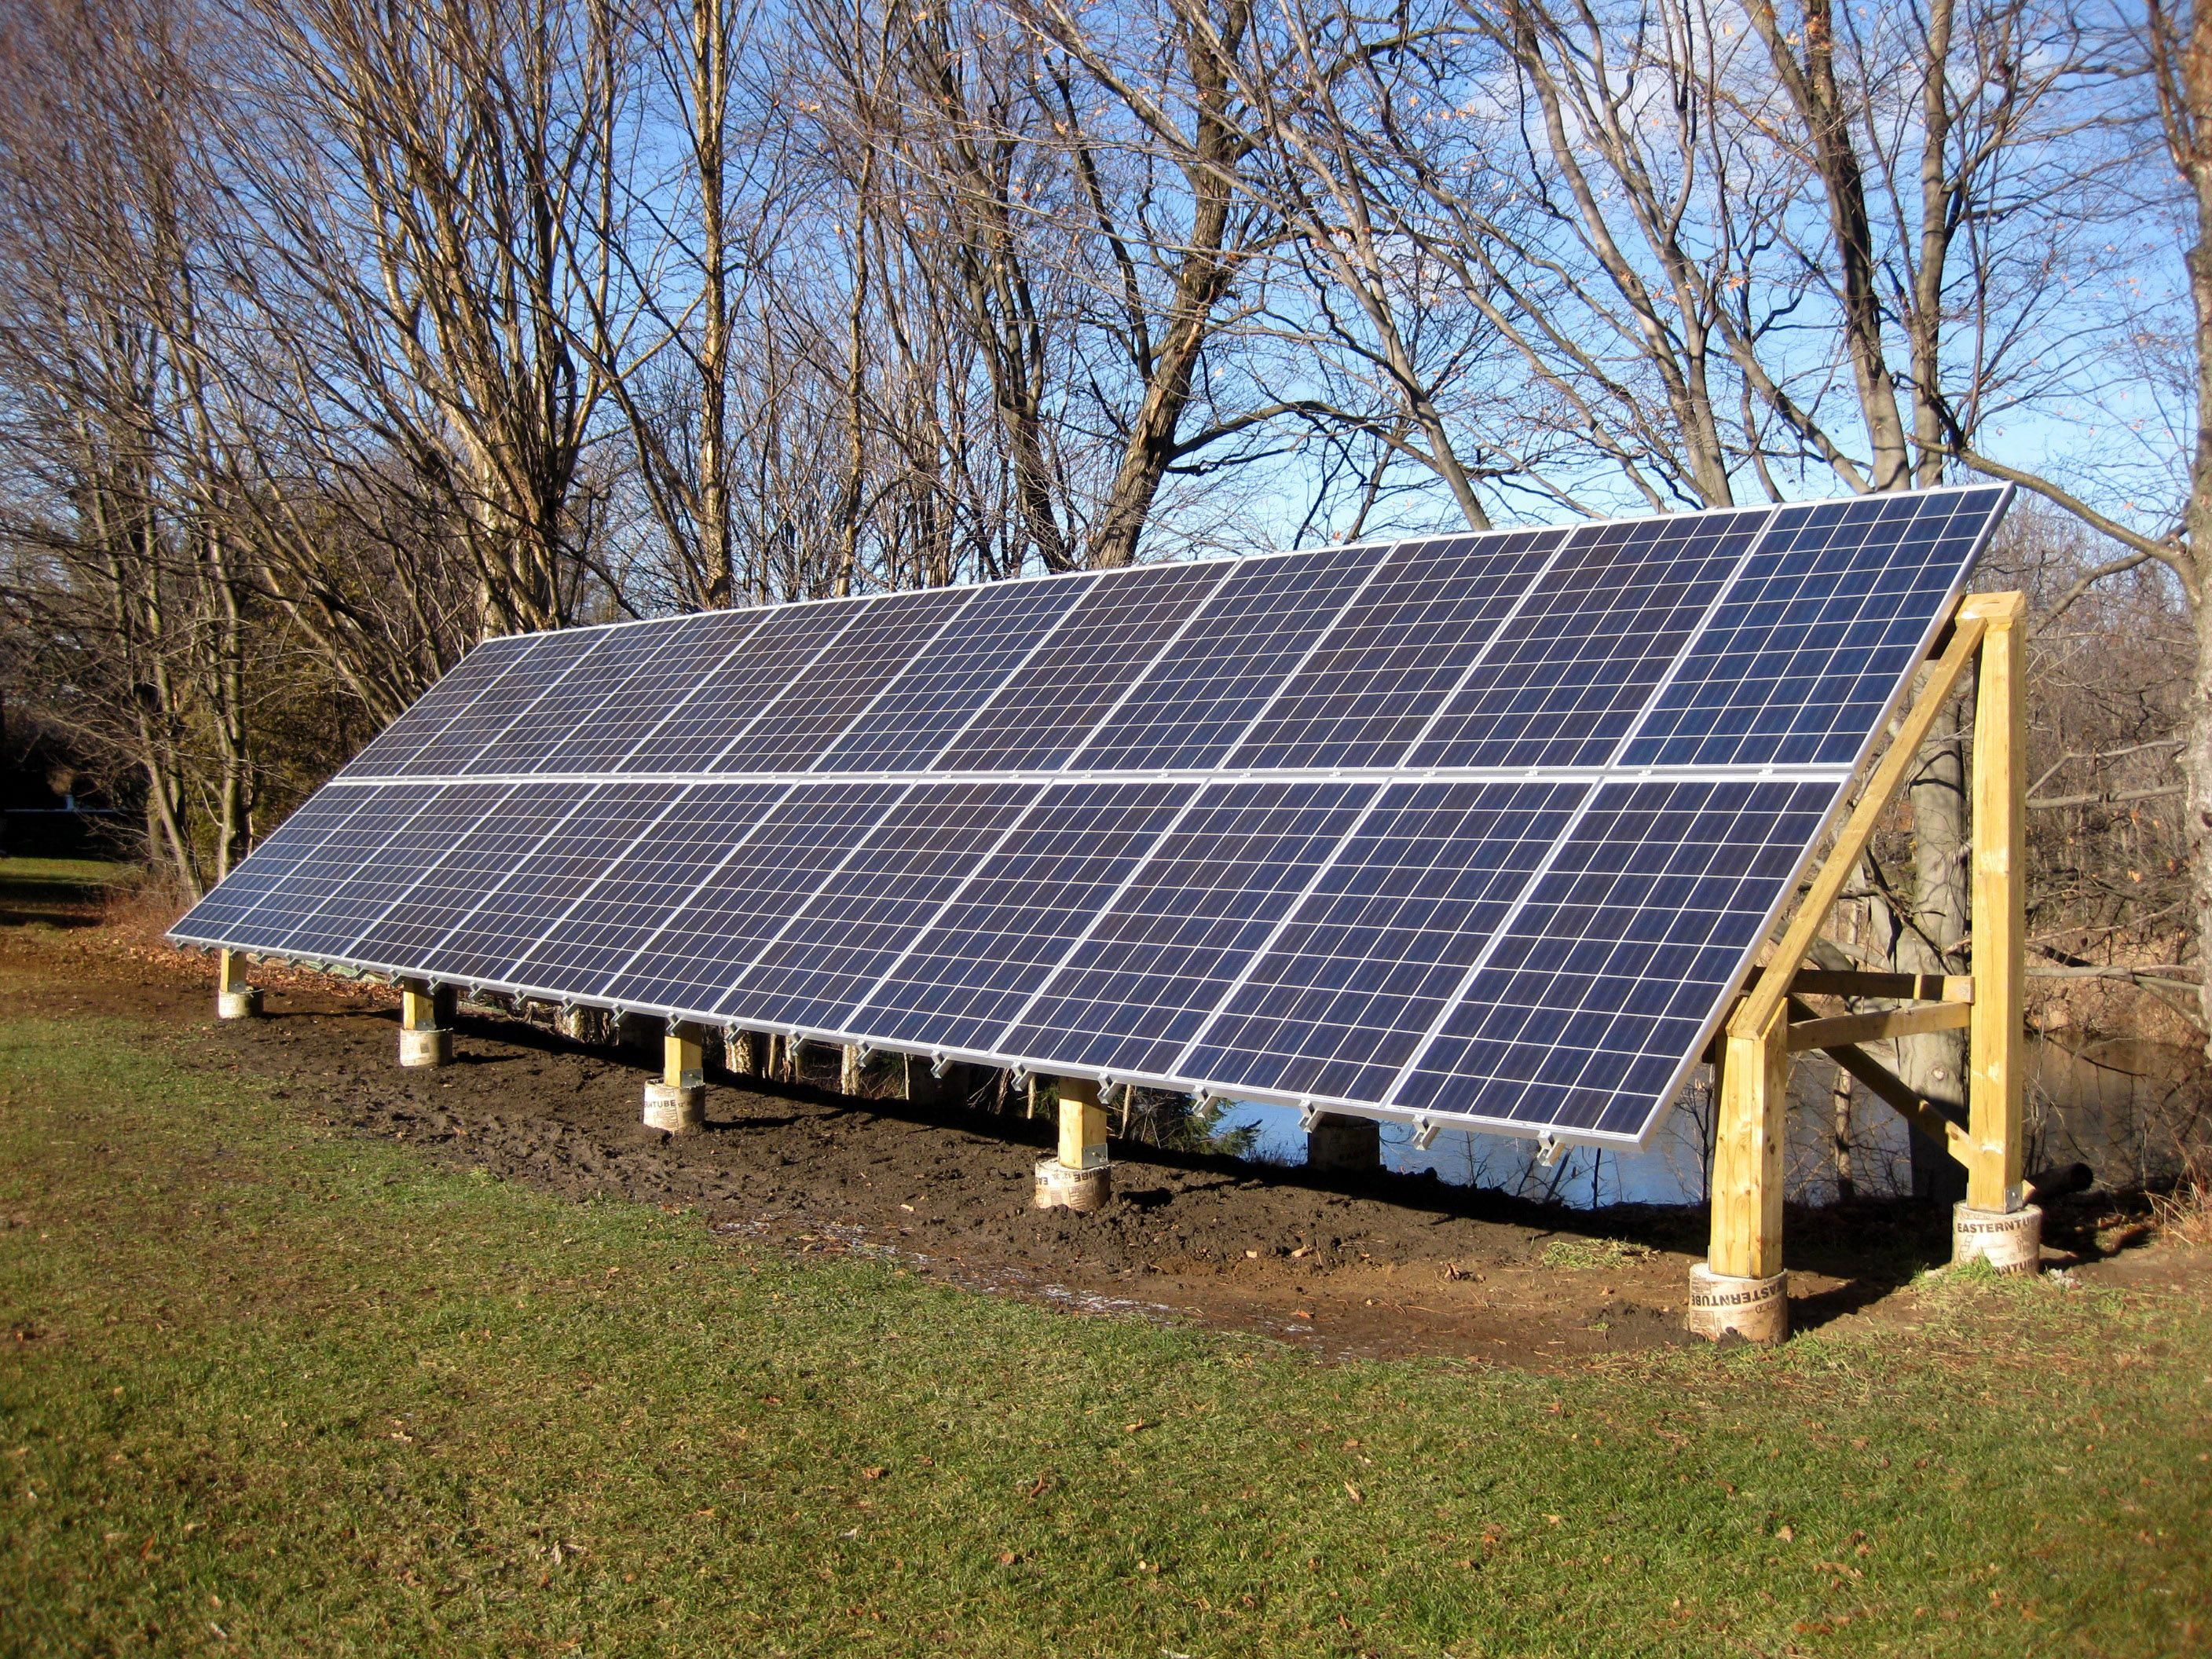 It S Possible To Build Your Own Wood Groundmount For Your Solar System Easy To Brush The Snow Off And Solar Panels Roof Solar Panels For Sale Solar Panel Cost